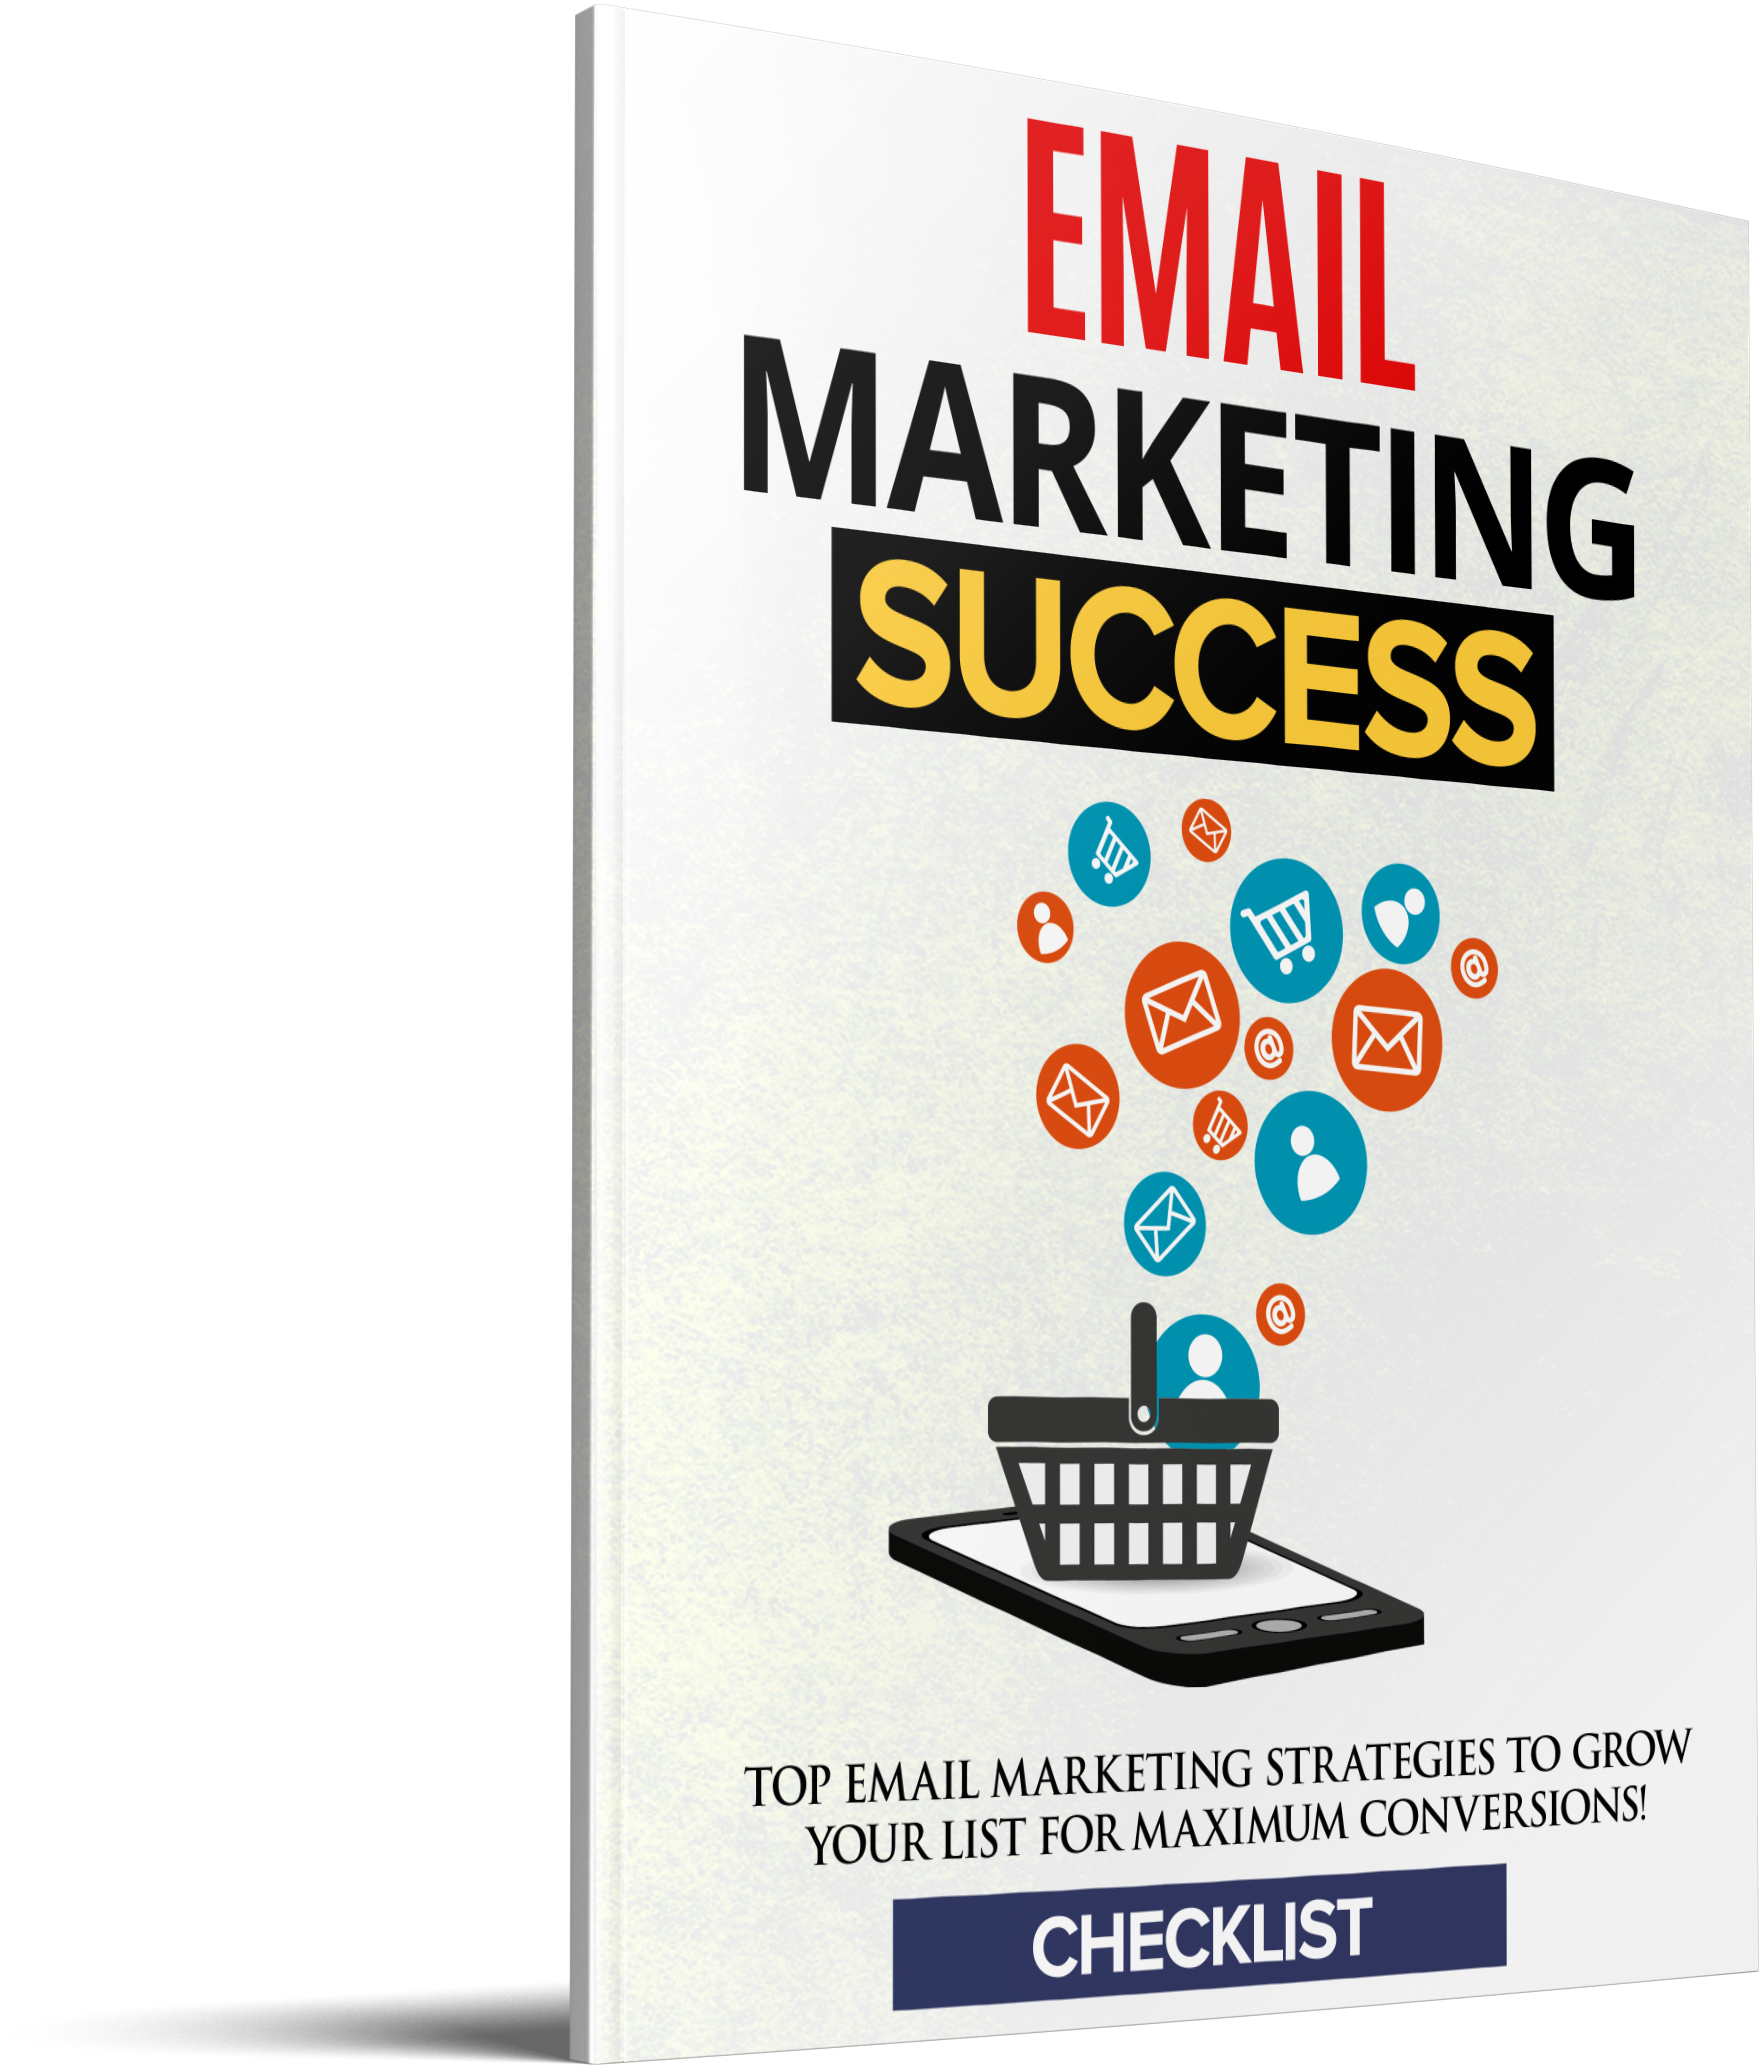 Email Marketing Success Checklist